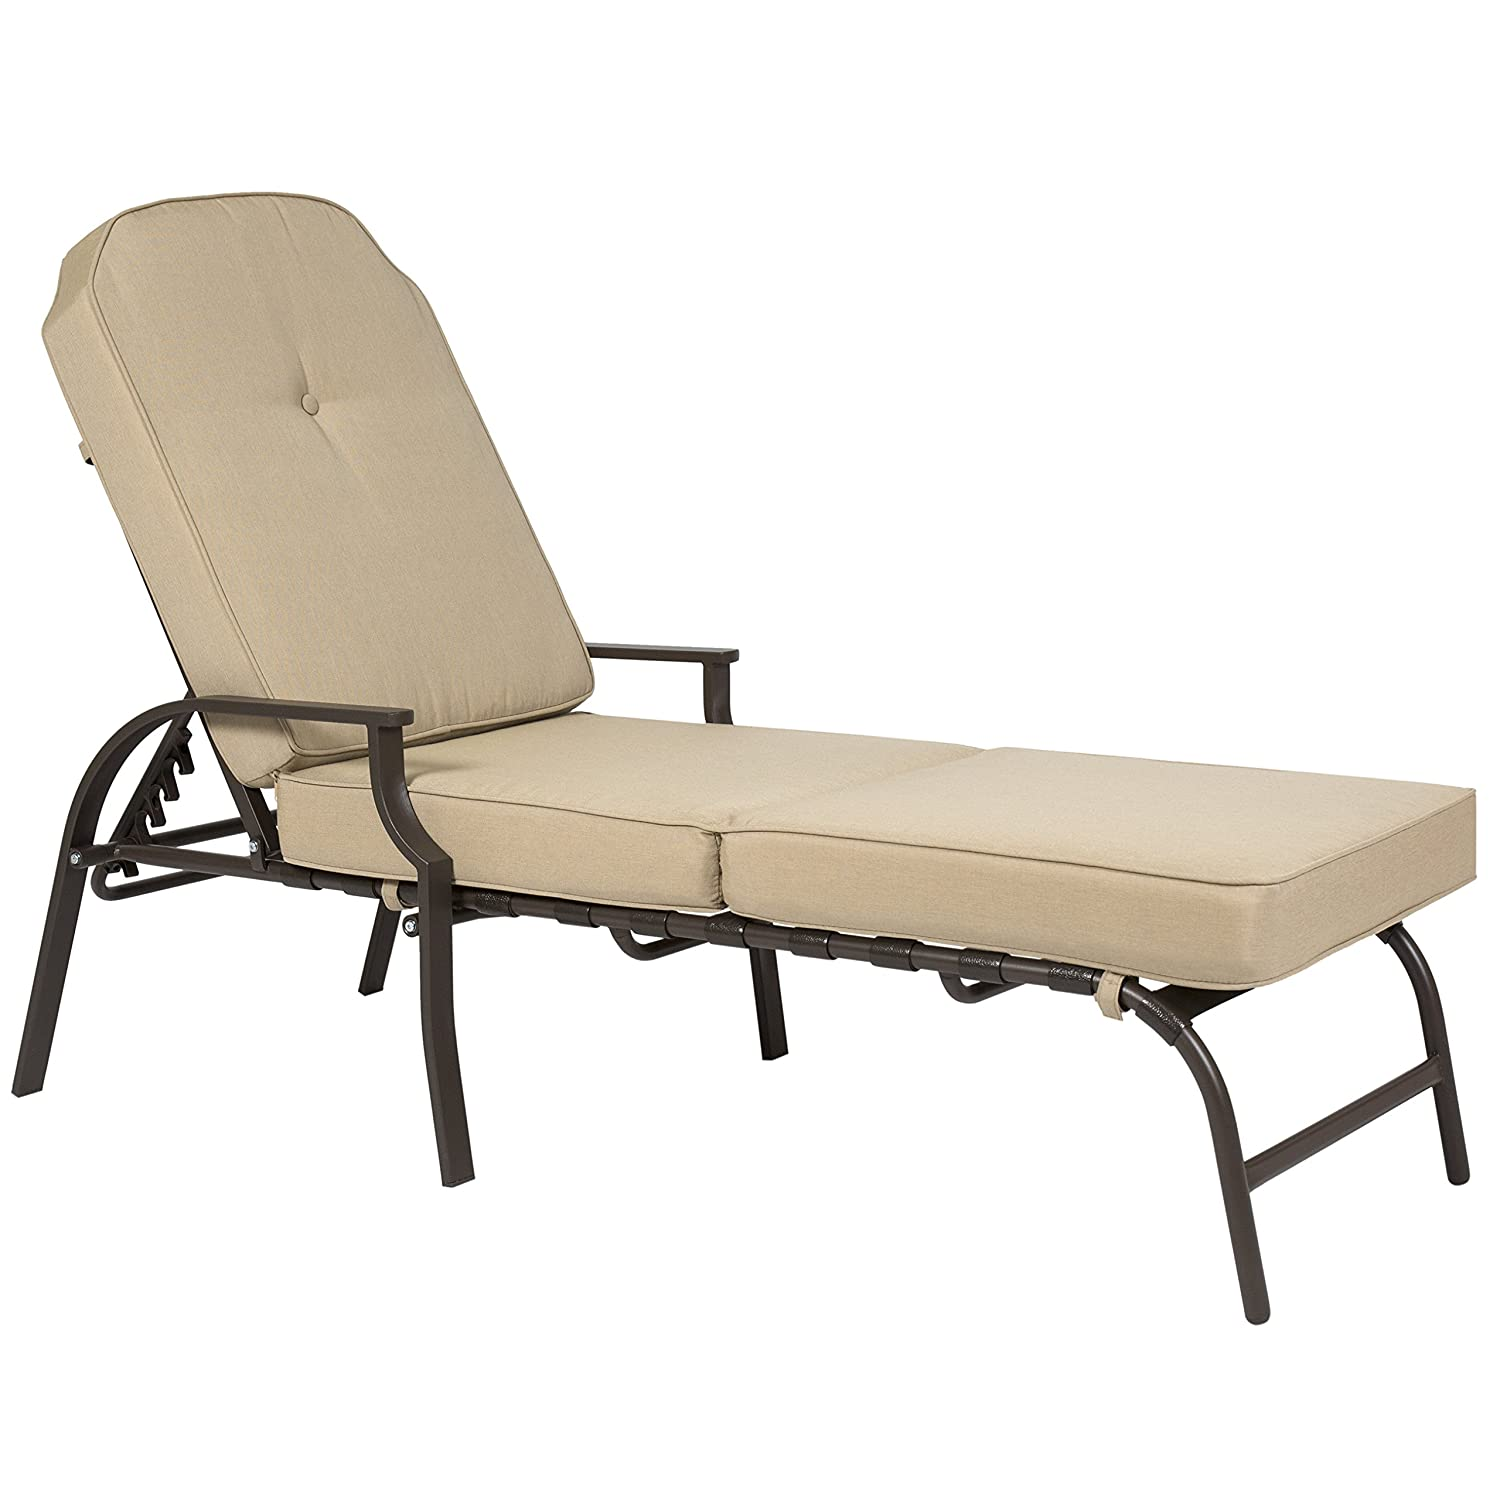 outdoor lounger seating com java monserratsangria lounge daybeds cheap wicker lexington chaises chaise lounges